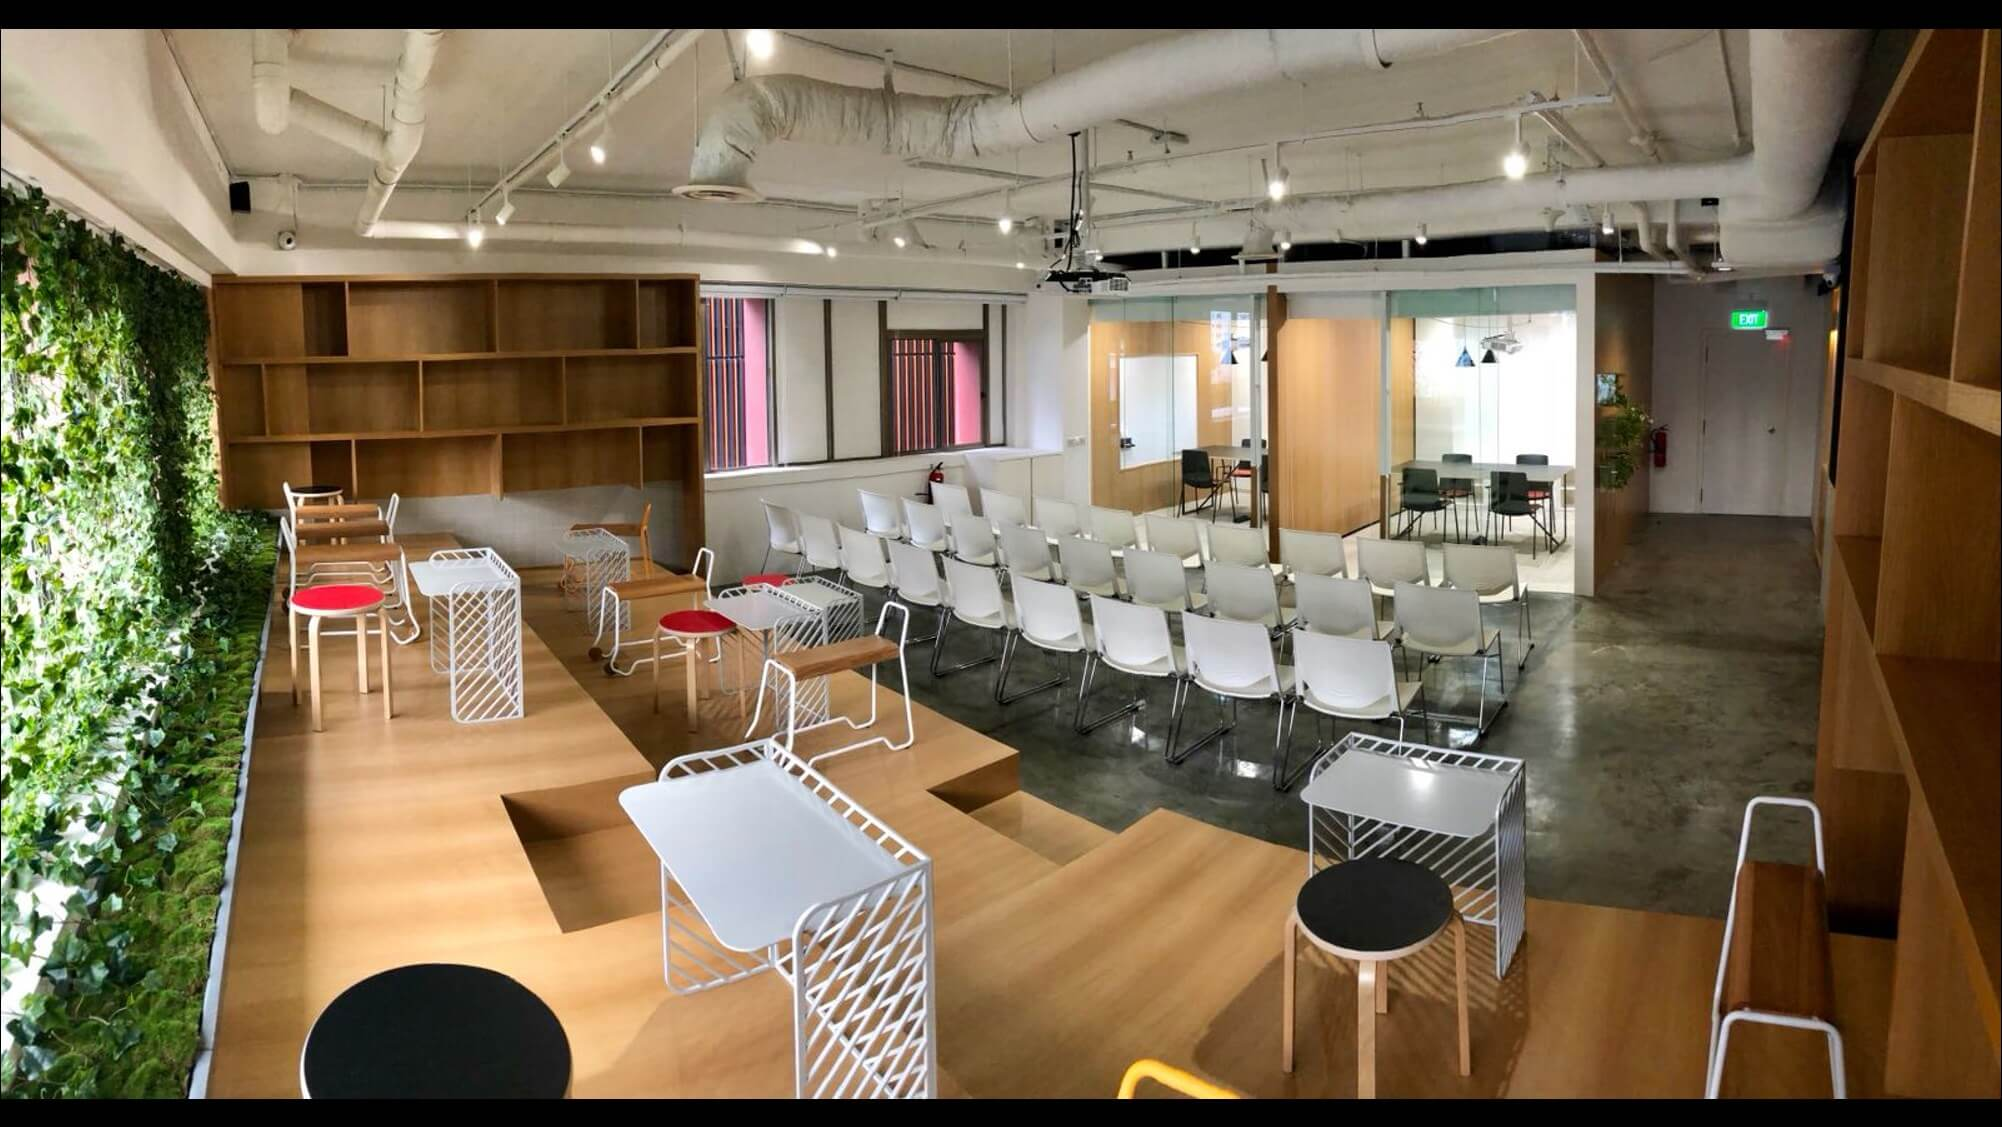 CoCre8 Coworking Space in Singapore